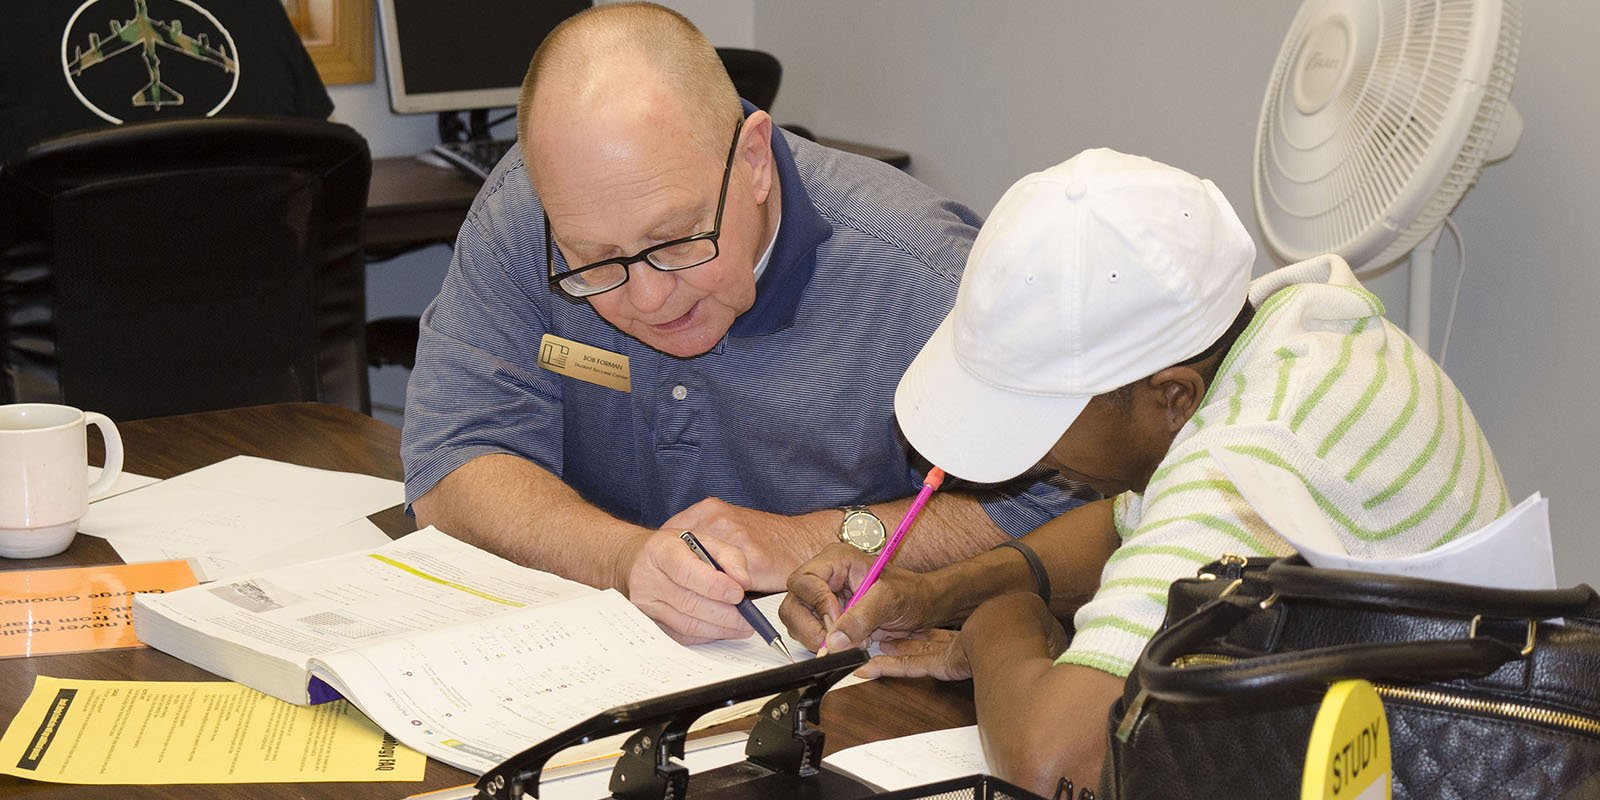 An instructor helping a student with an assignment.